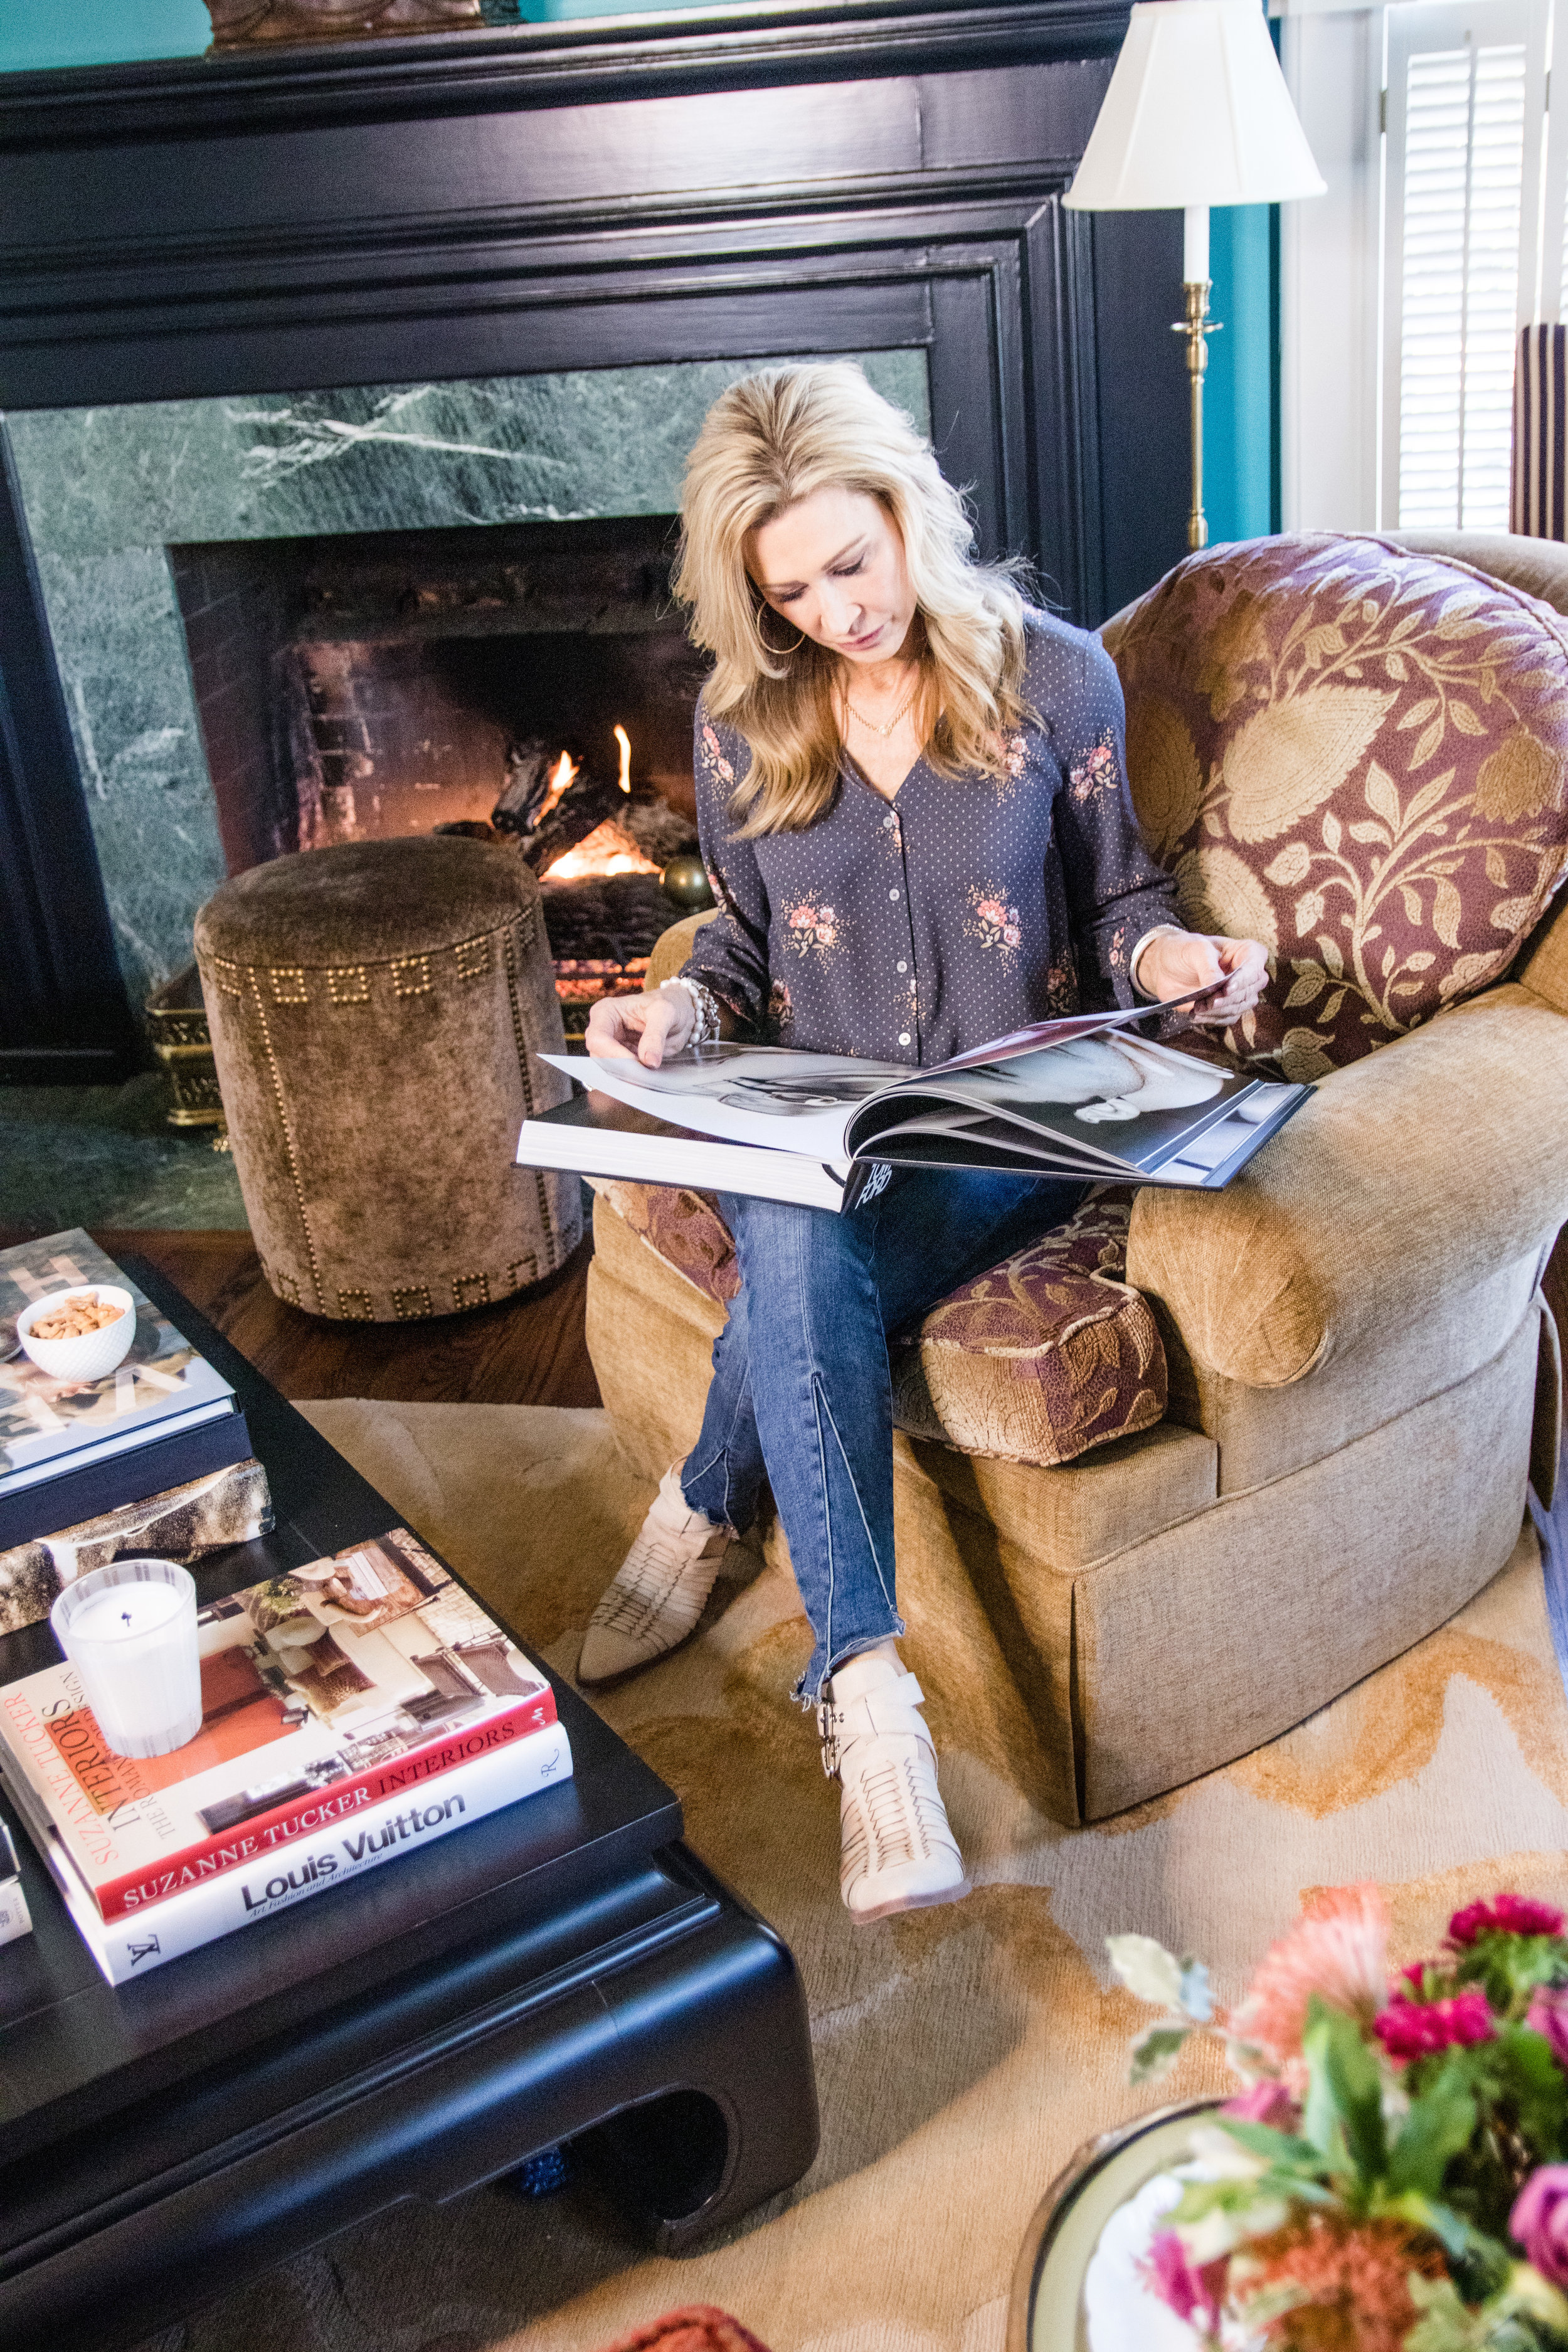 Coffee Table Books - Crazy Blonde Life